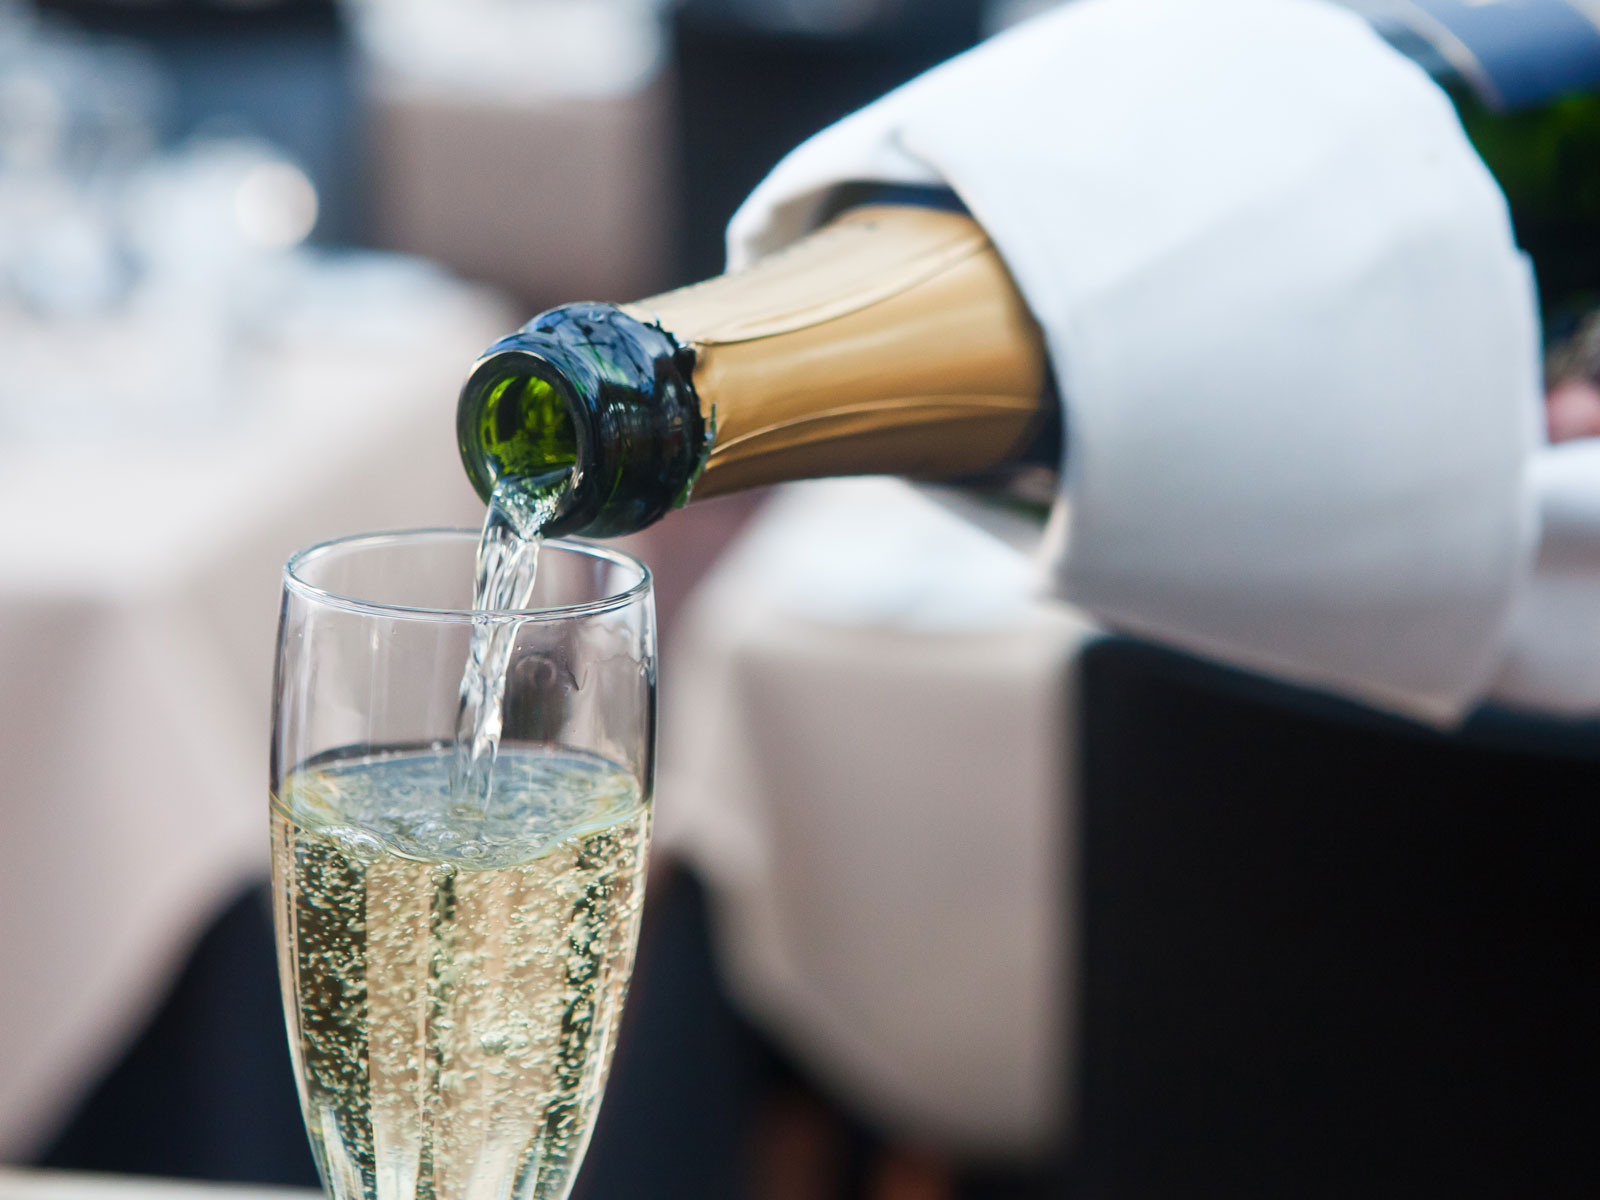 108-year-old-champagne-FT-BLOG1019.jpg